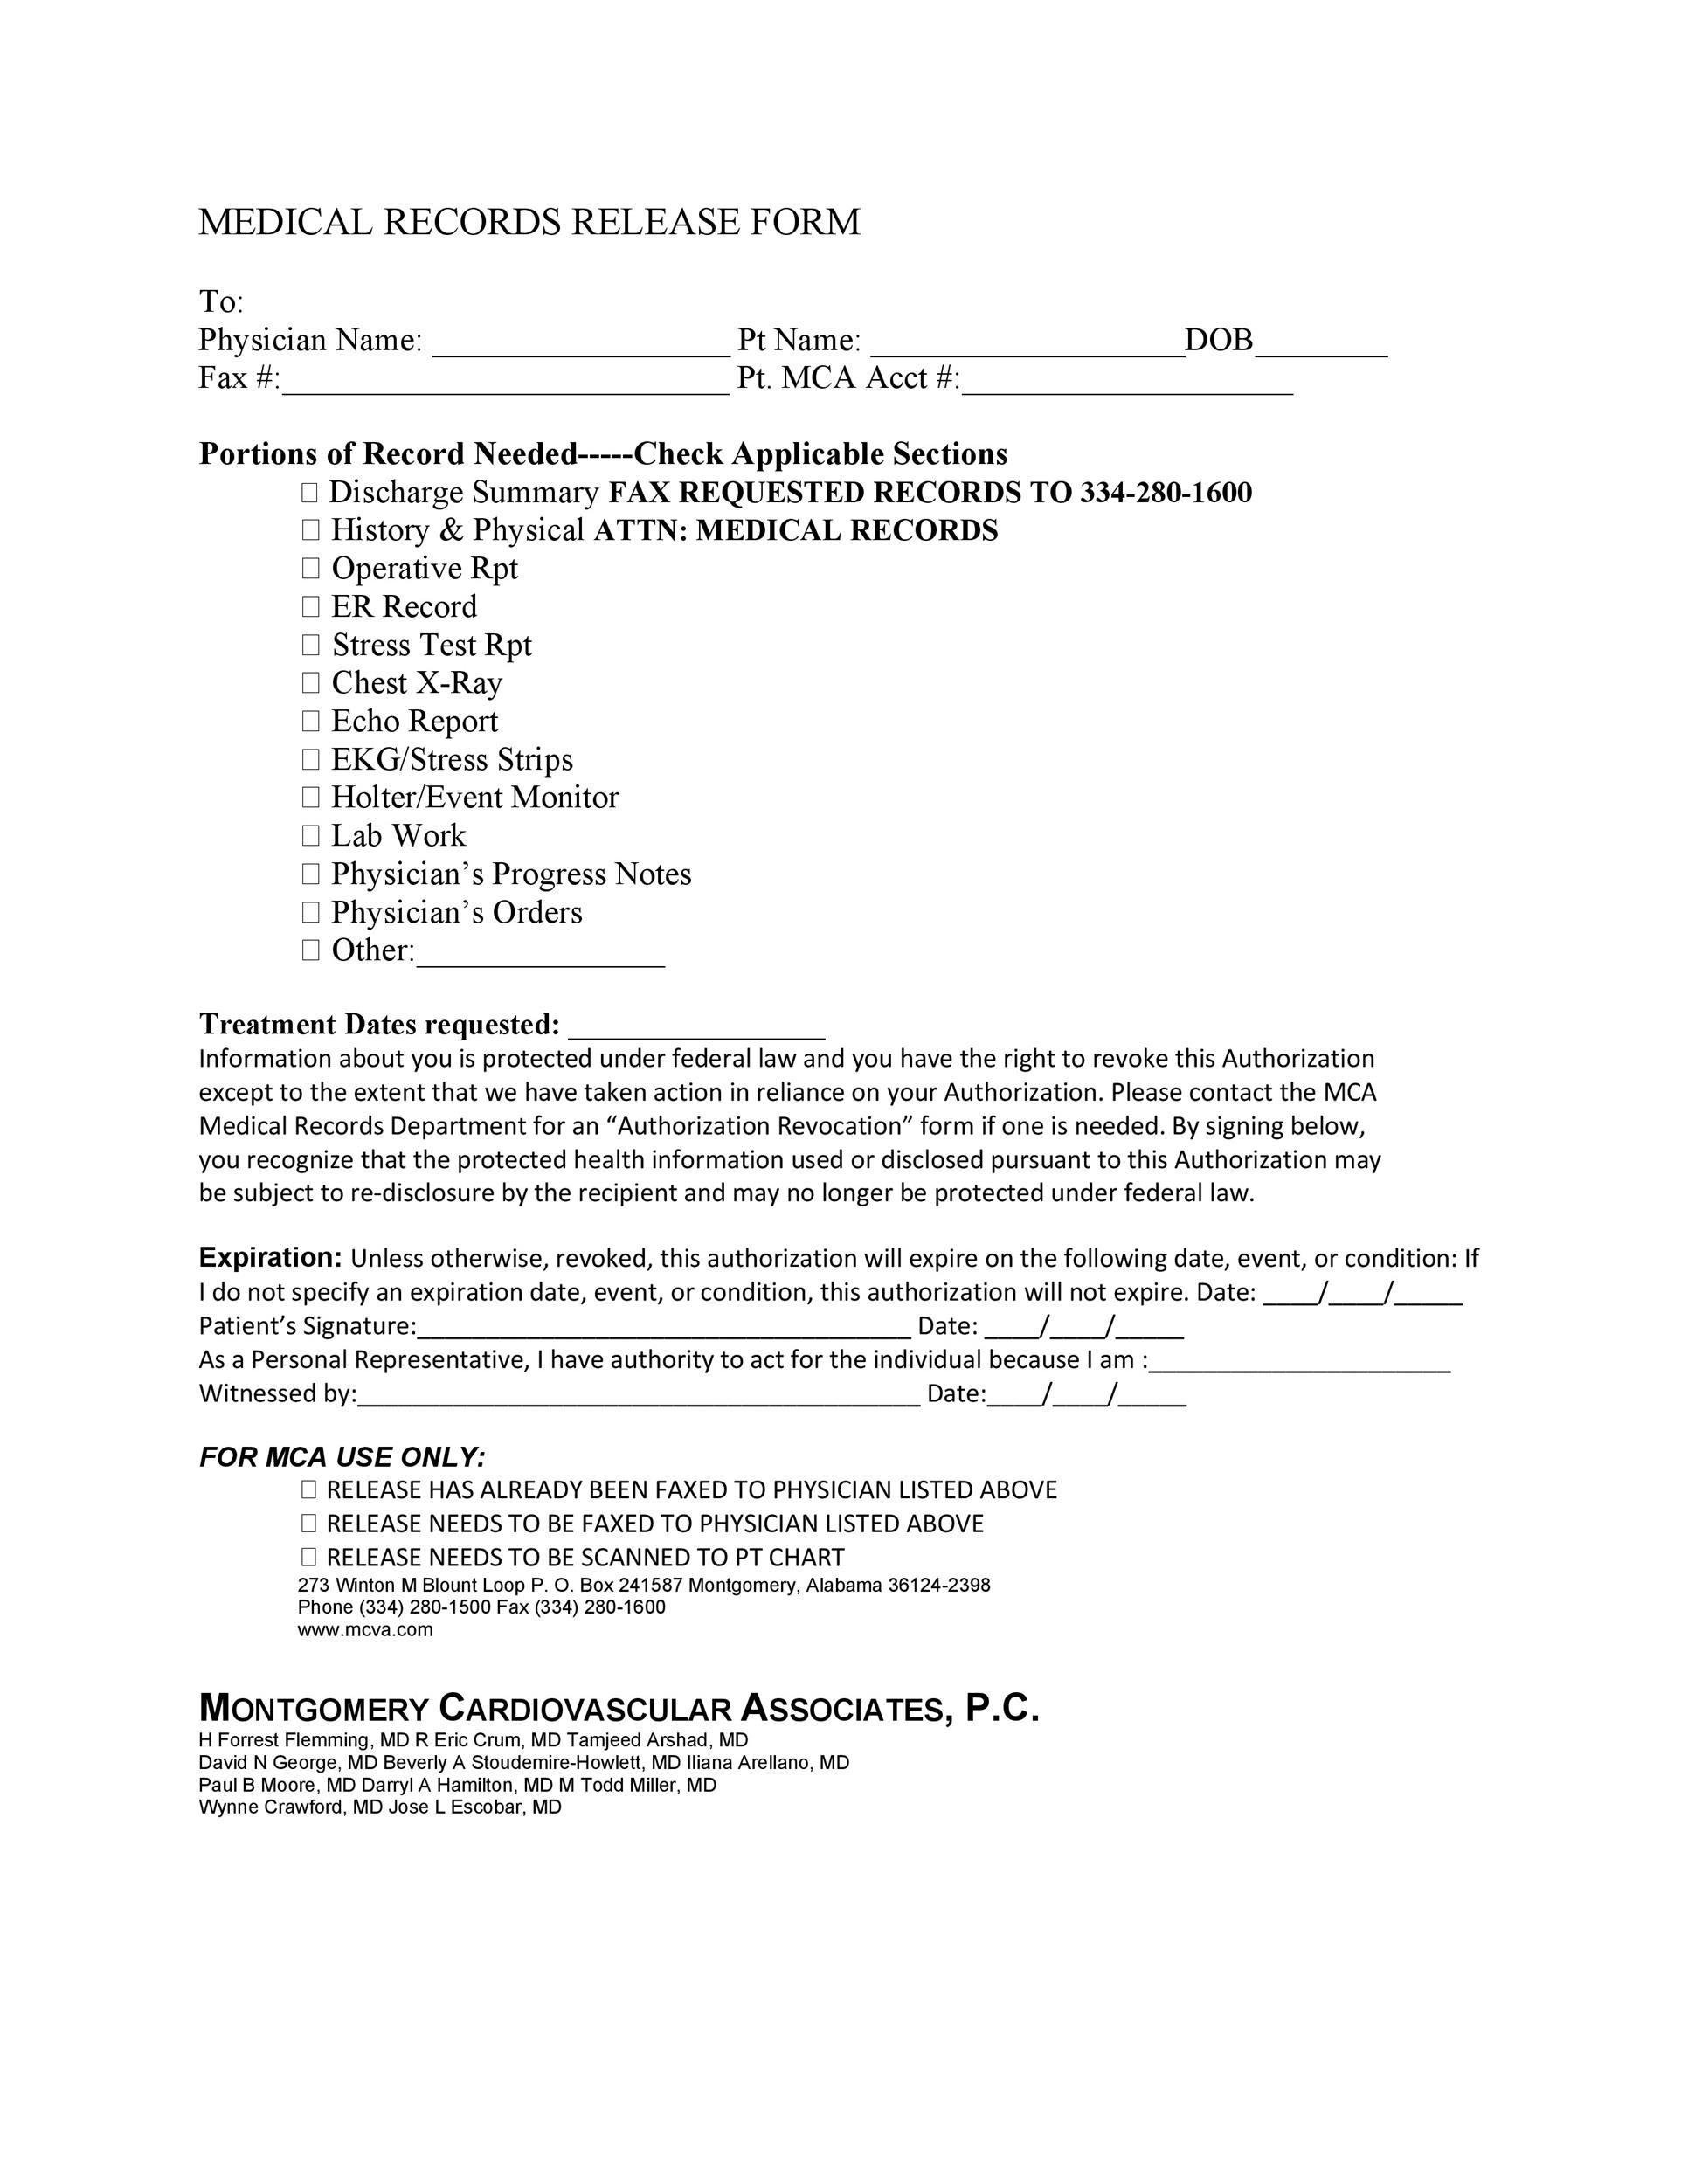 Printable Release Form Dental Medical Records Release Medical